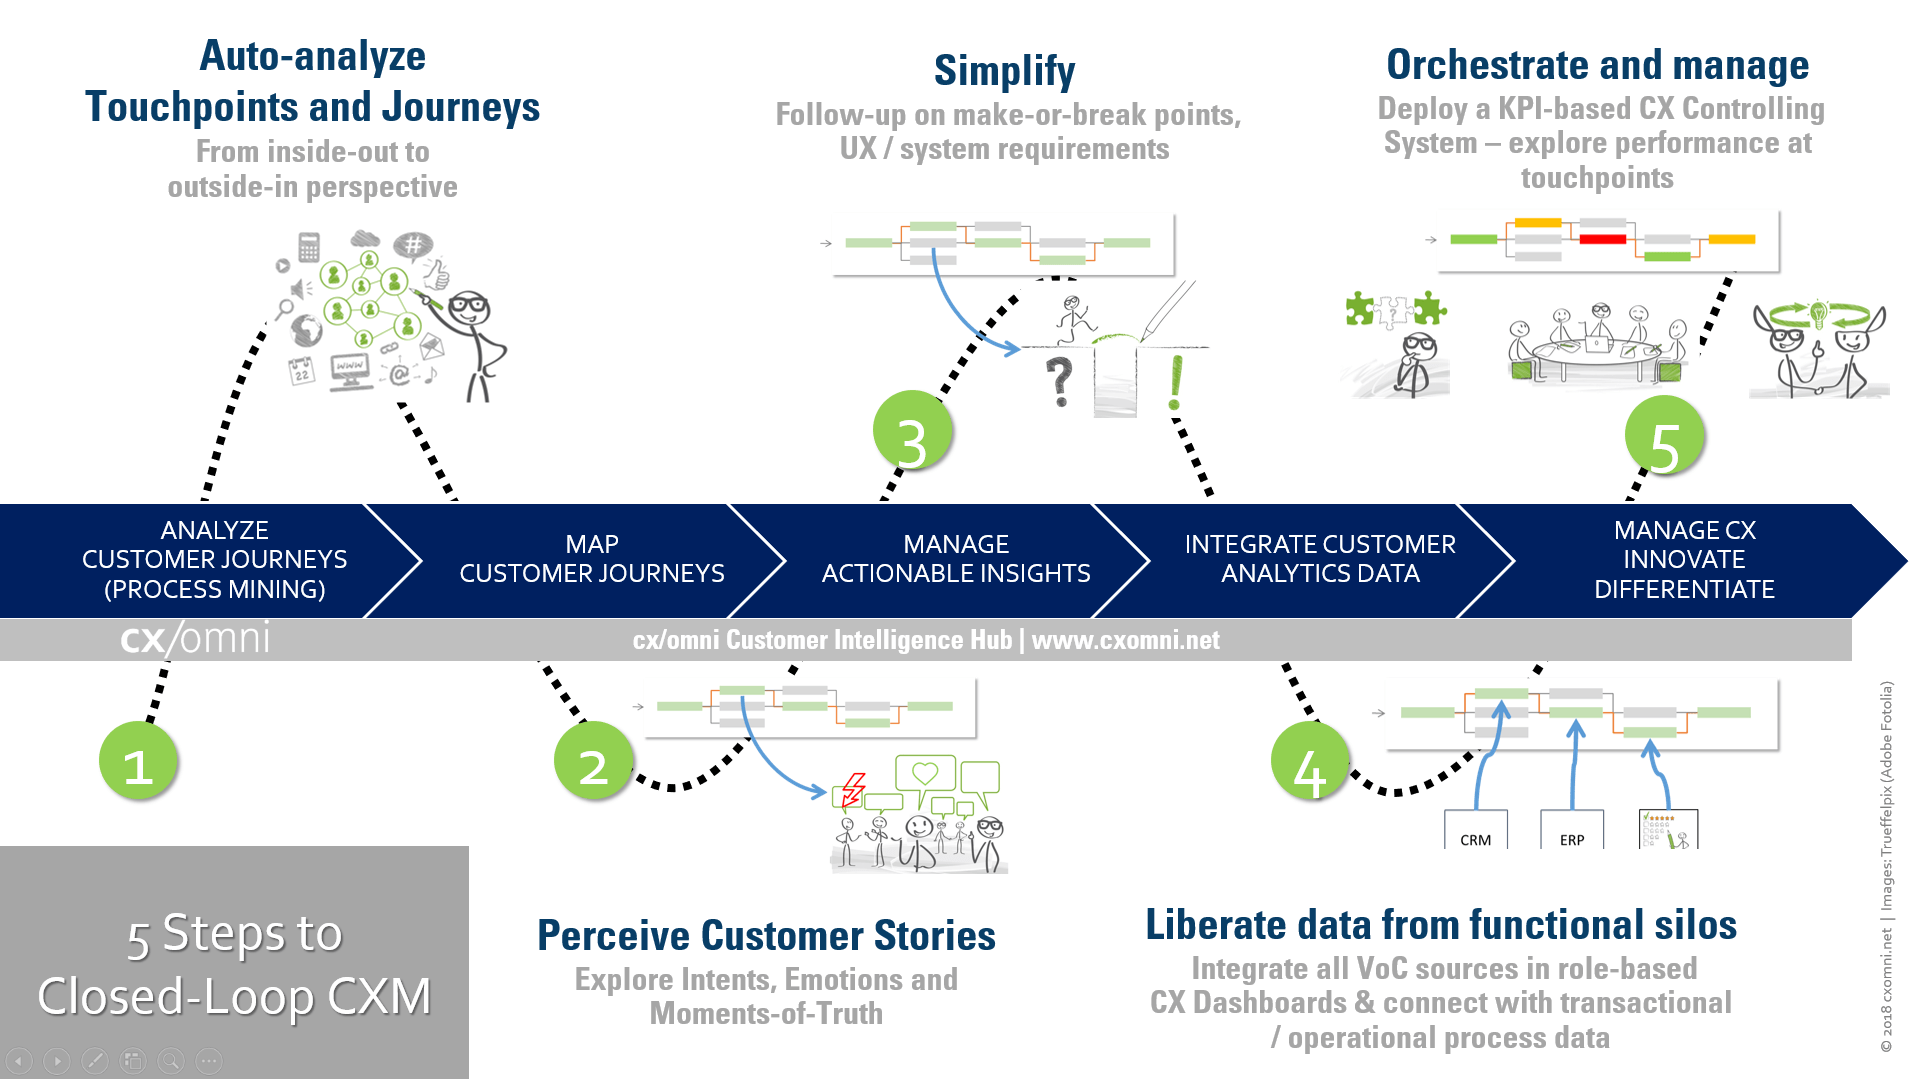 5 Steps to Closed Loop Customer Experience Management (CXM)